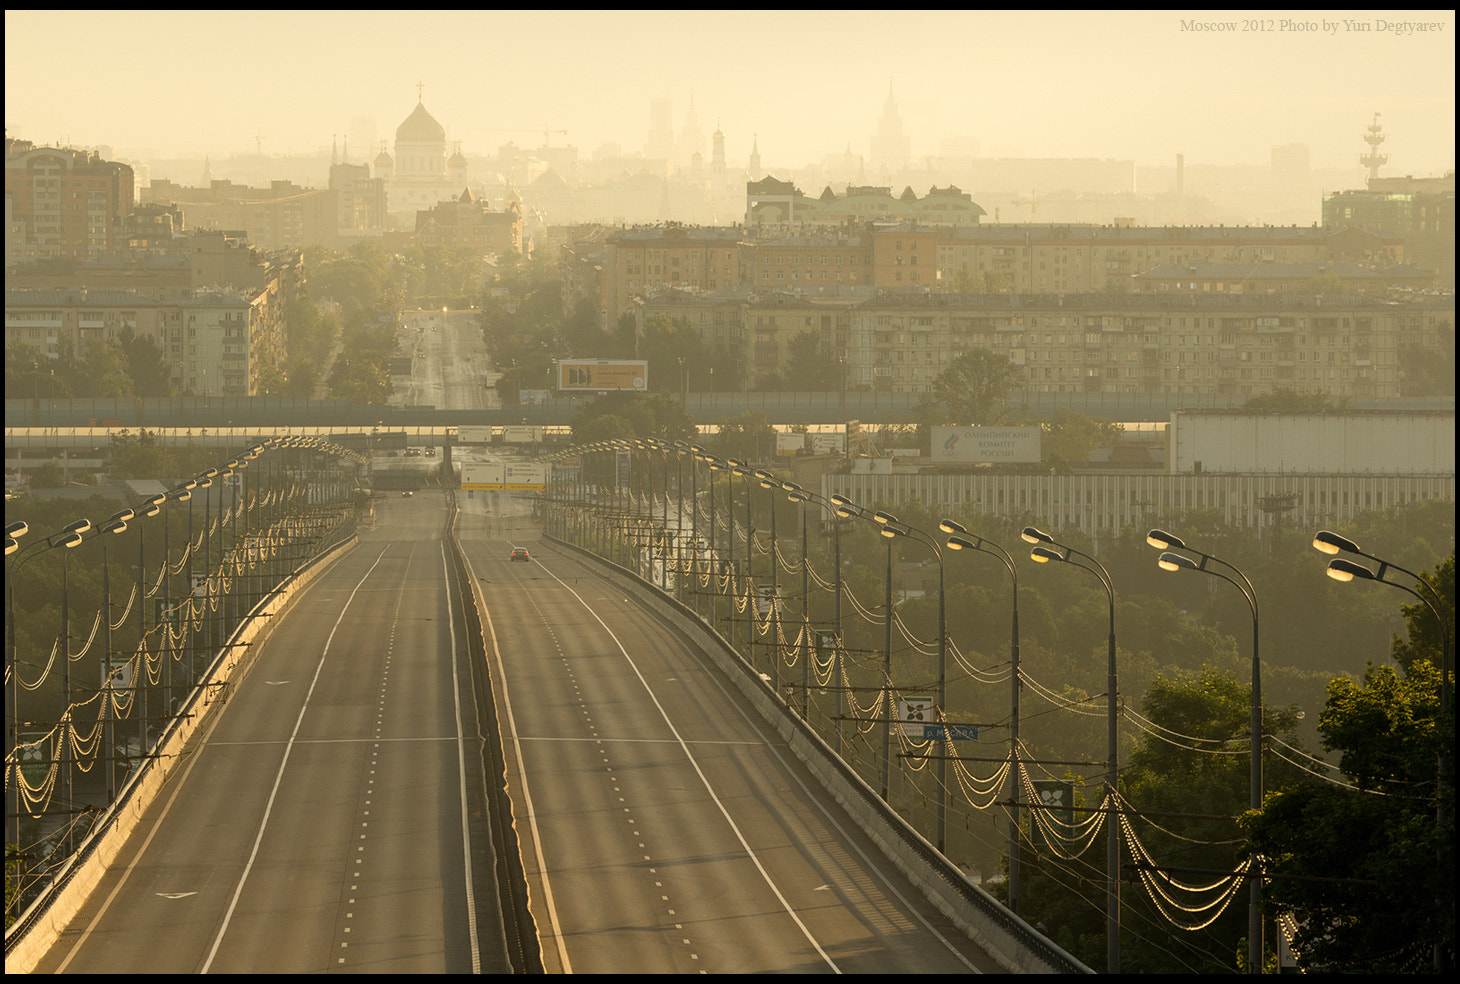 Photograph Russia. Moscow at dawn. by Yuri Degtyarev on 500px